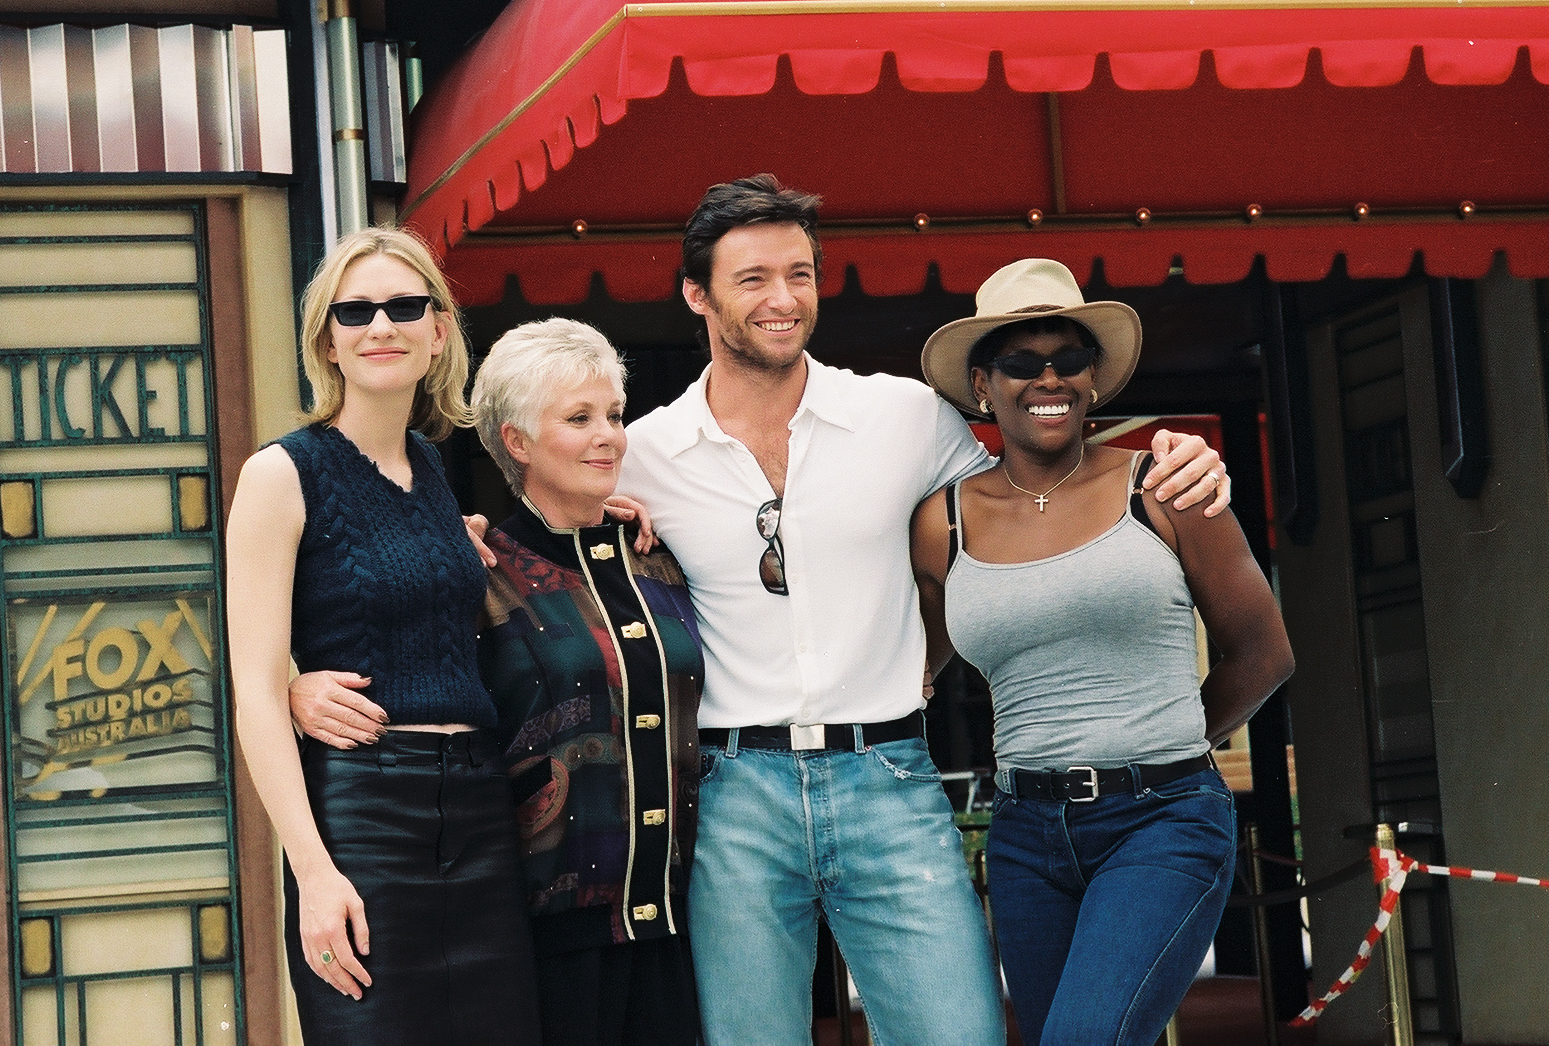 cate+shirly+hugh+marcia.jpg